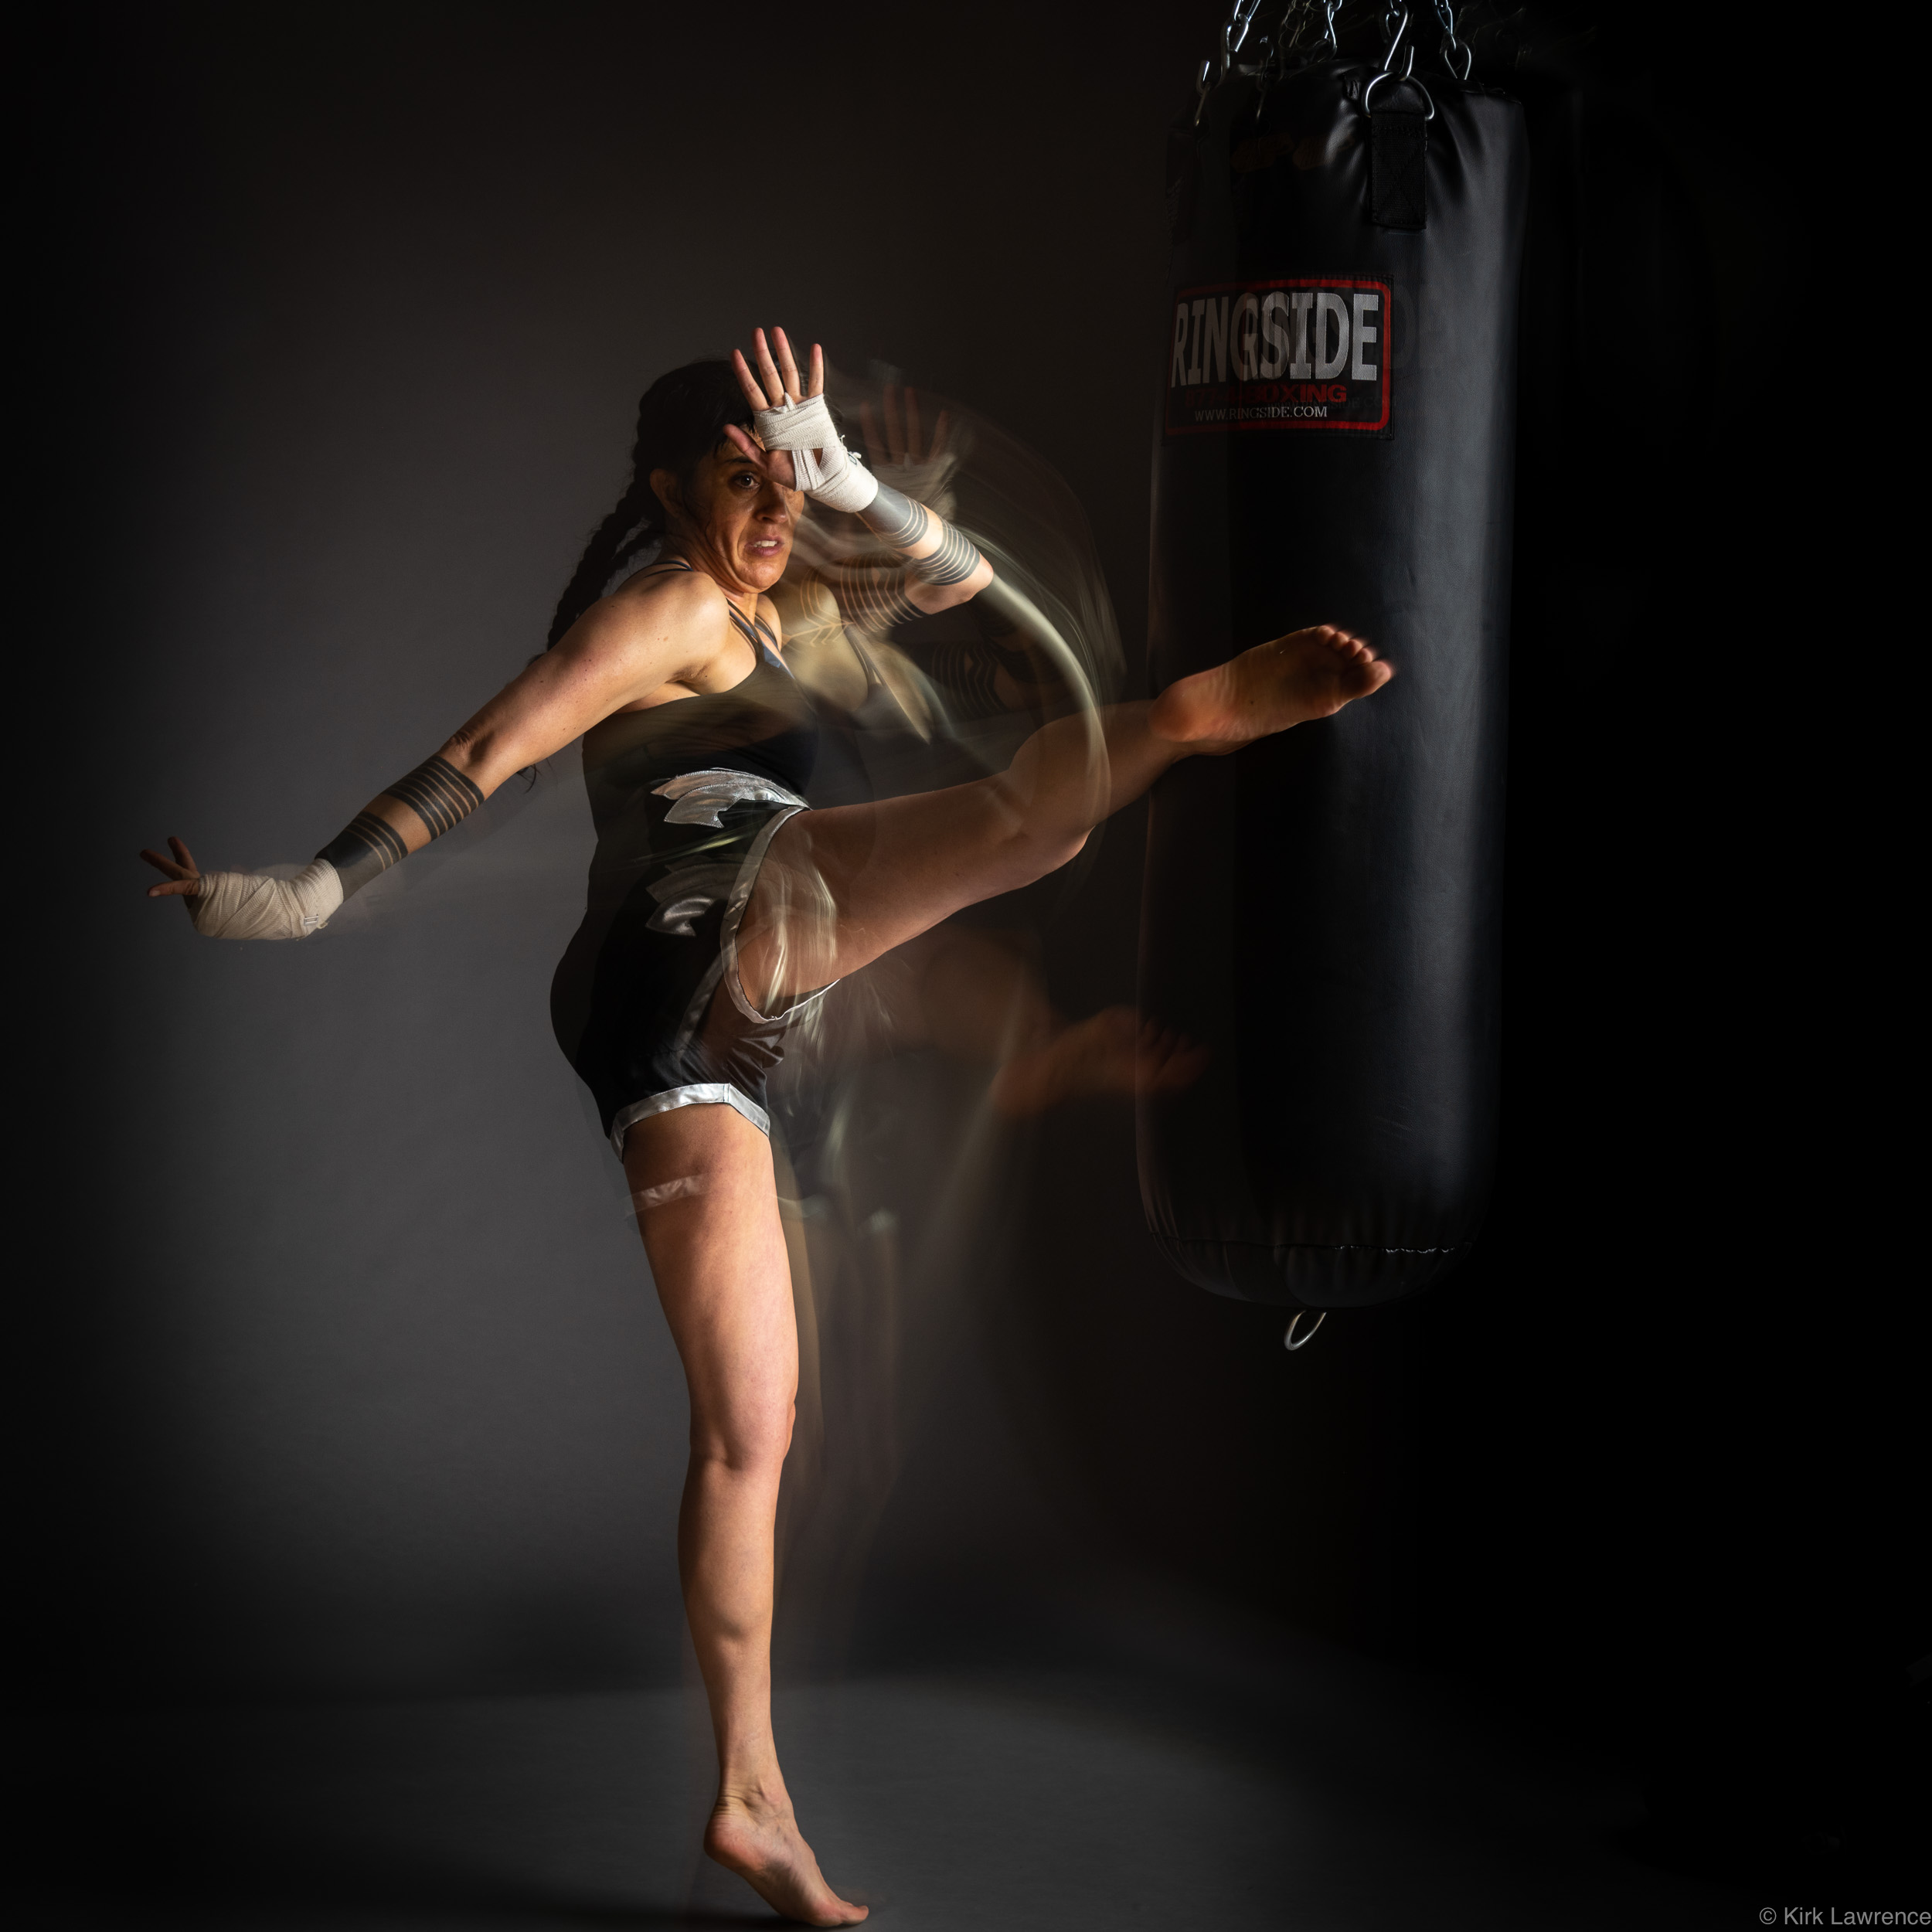 female_kickboxer_kicking_bag.jpg